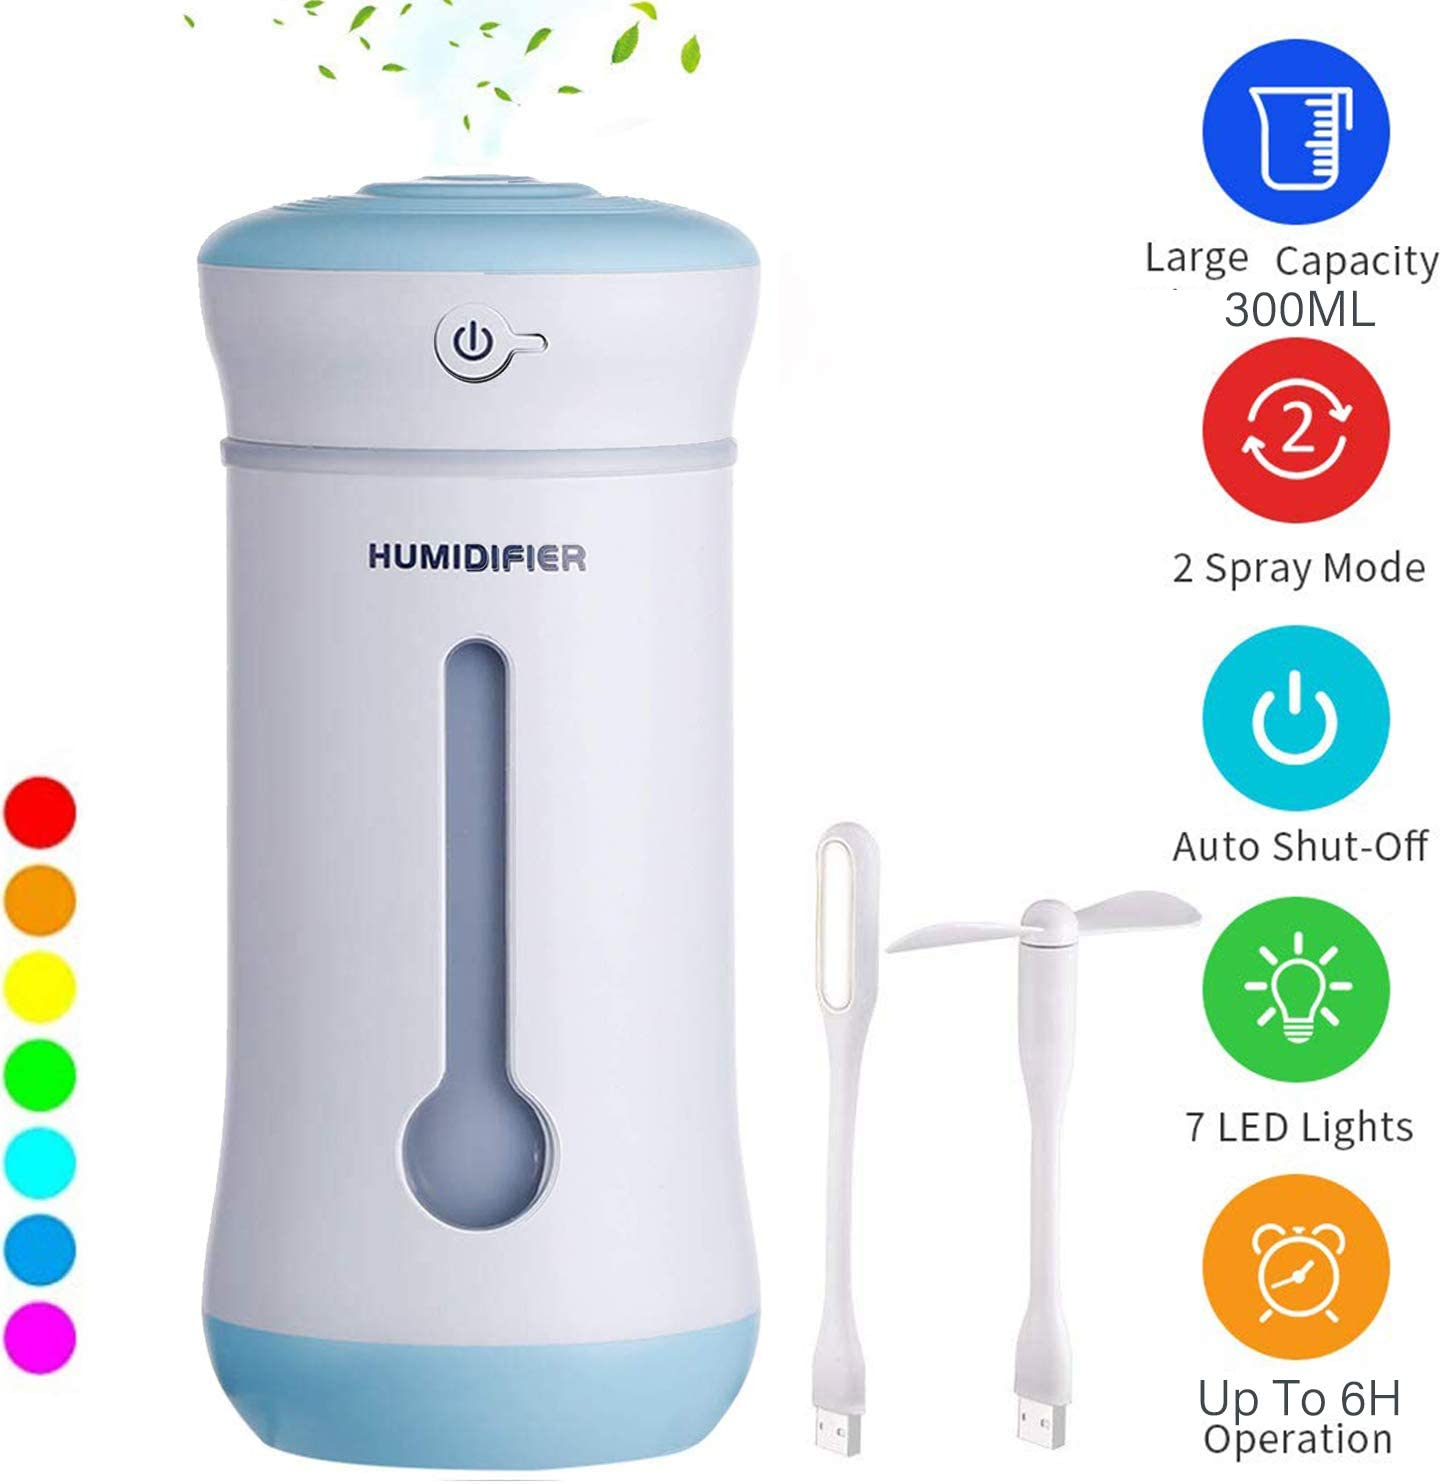 Cool Mist Humidifier 300ml Spray Ultrasonic Air Humidifier Purifier Hydrating Portable With 7 Color Modes LED Light USB For Bedroom Home Office Car Baby Kids Table With Extra Mini LED Fan Blue